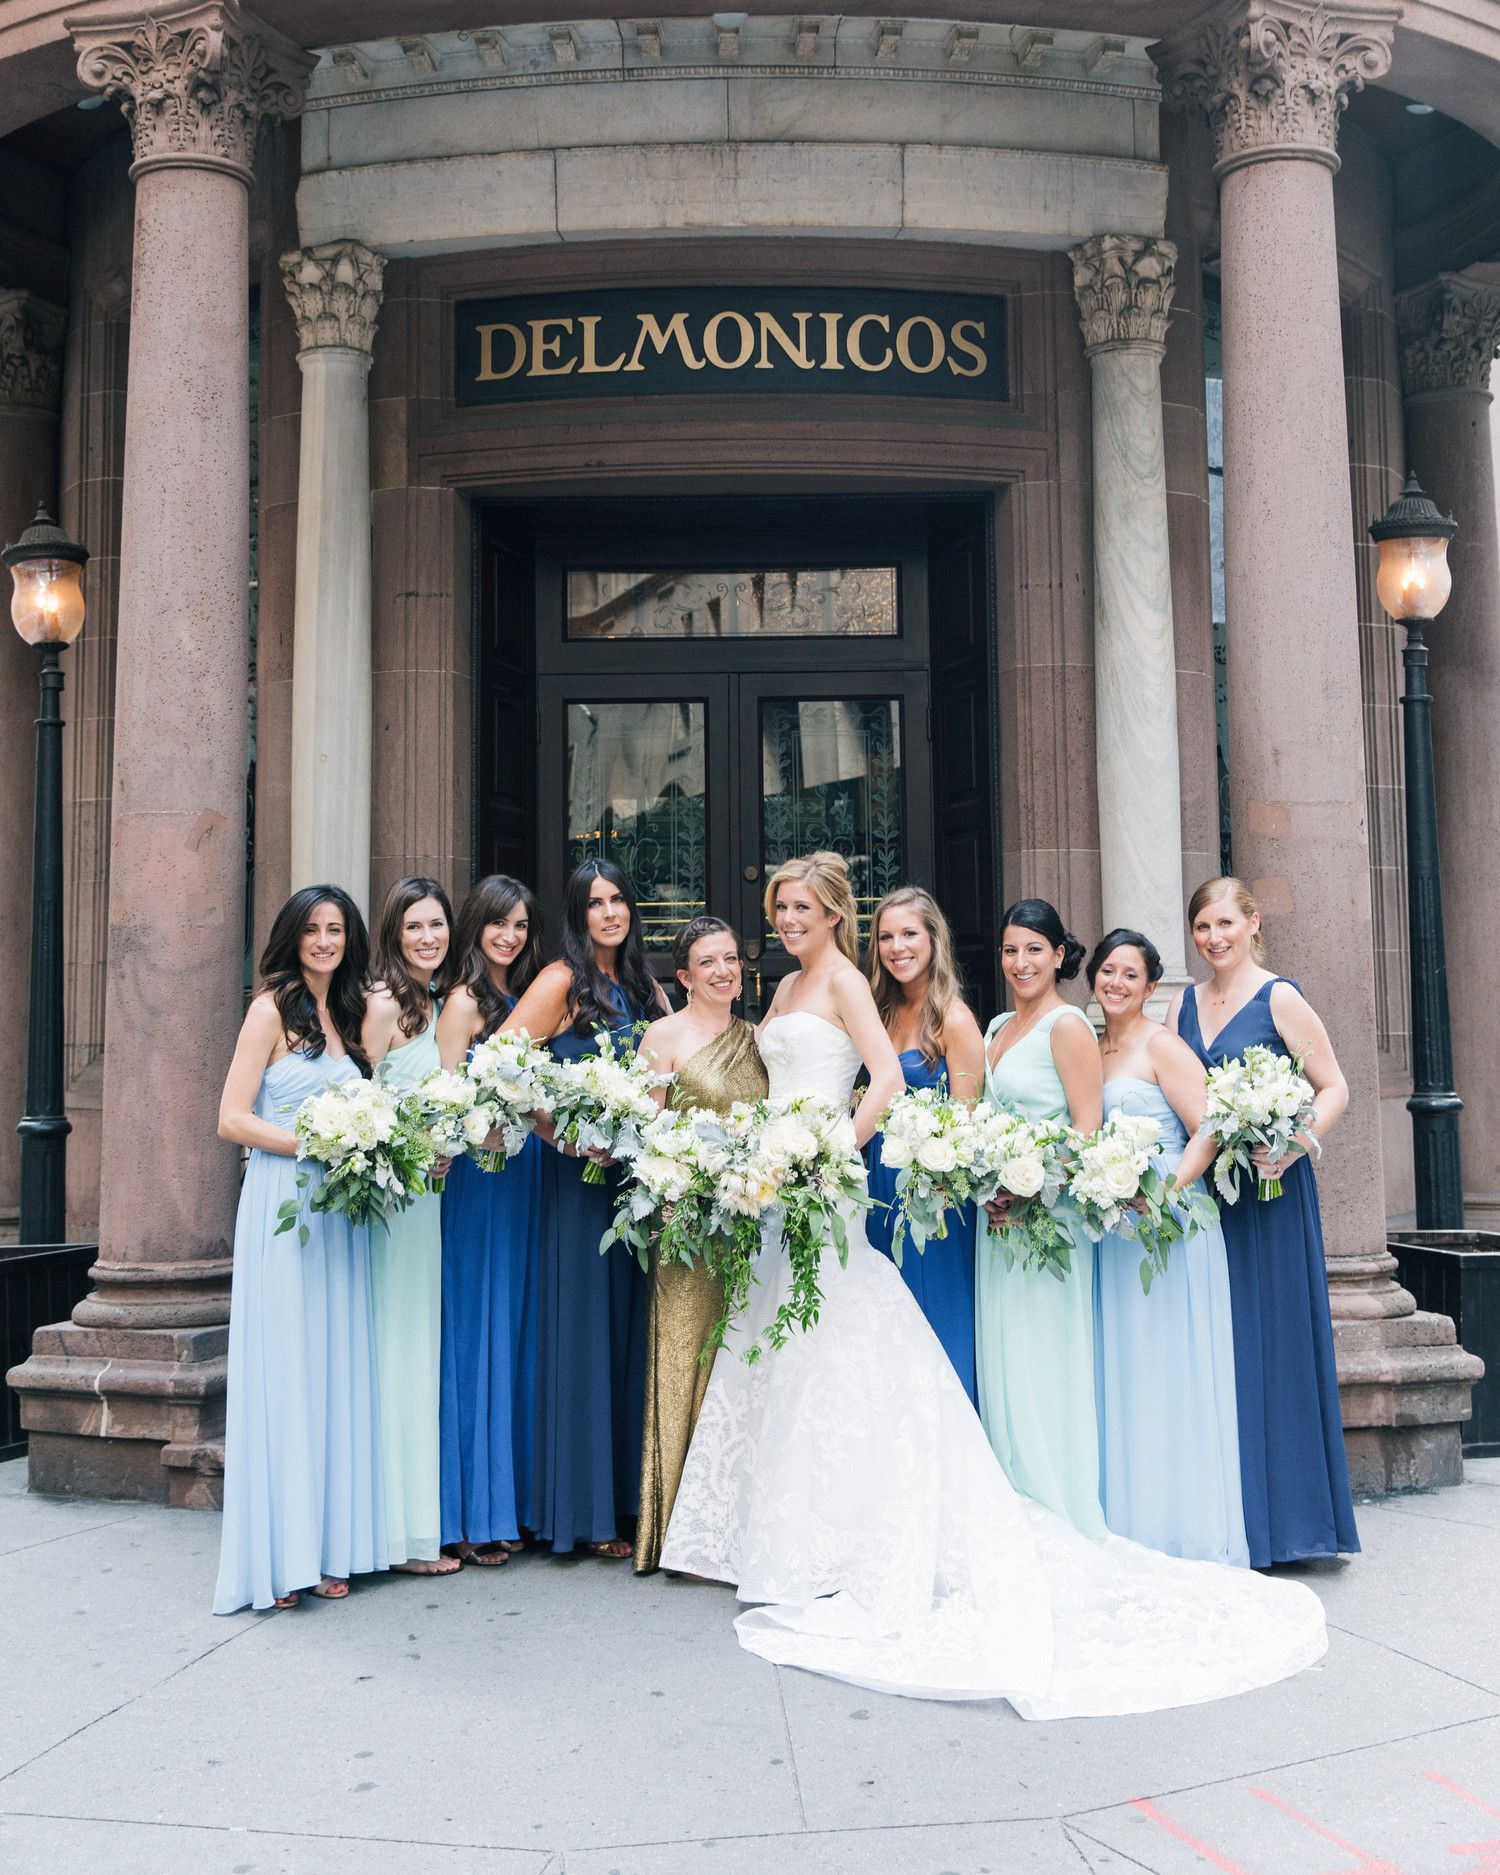 Amy's wedding dress  Amyus bridal party wore long gowns from Union Station in four